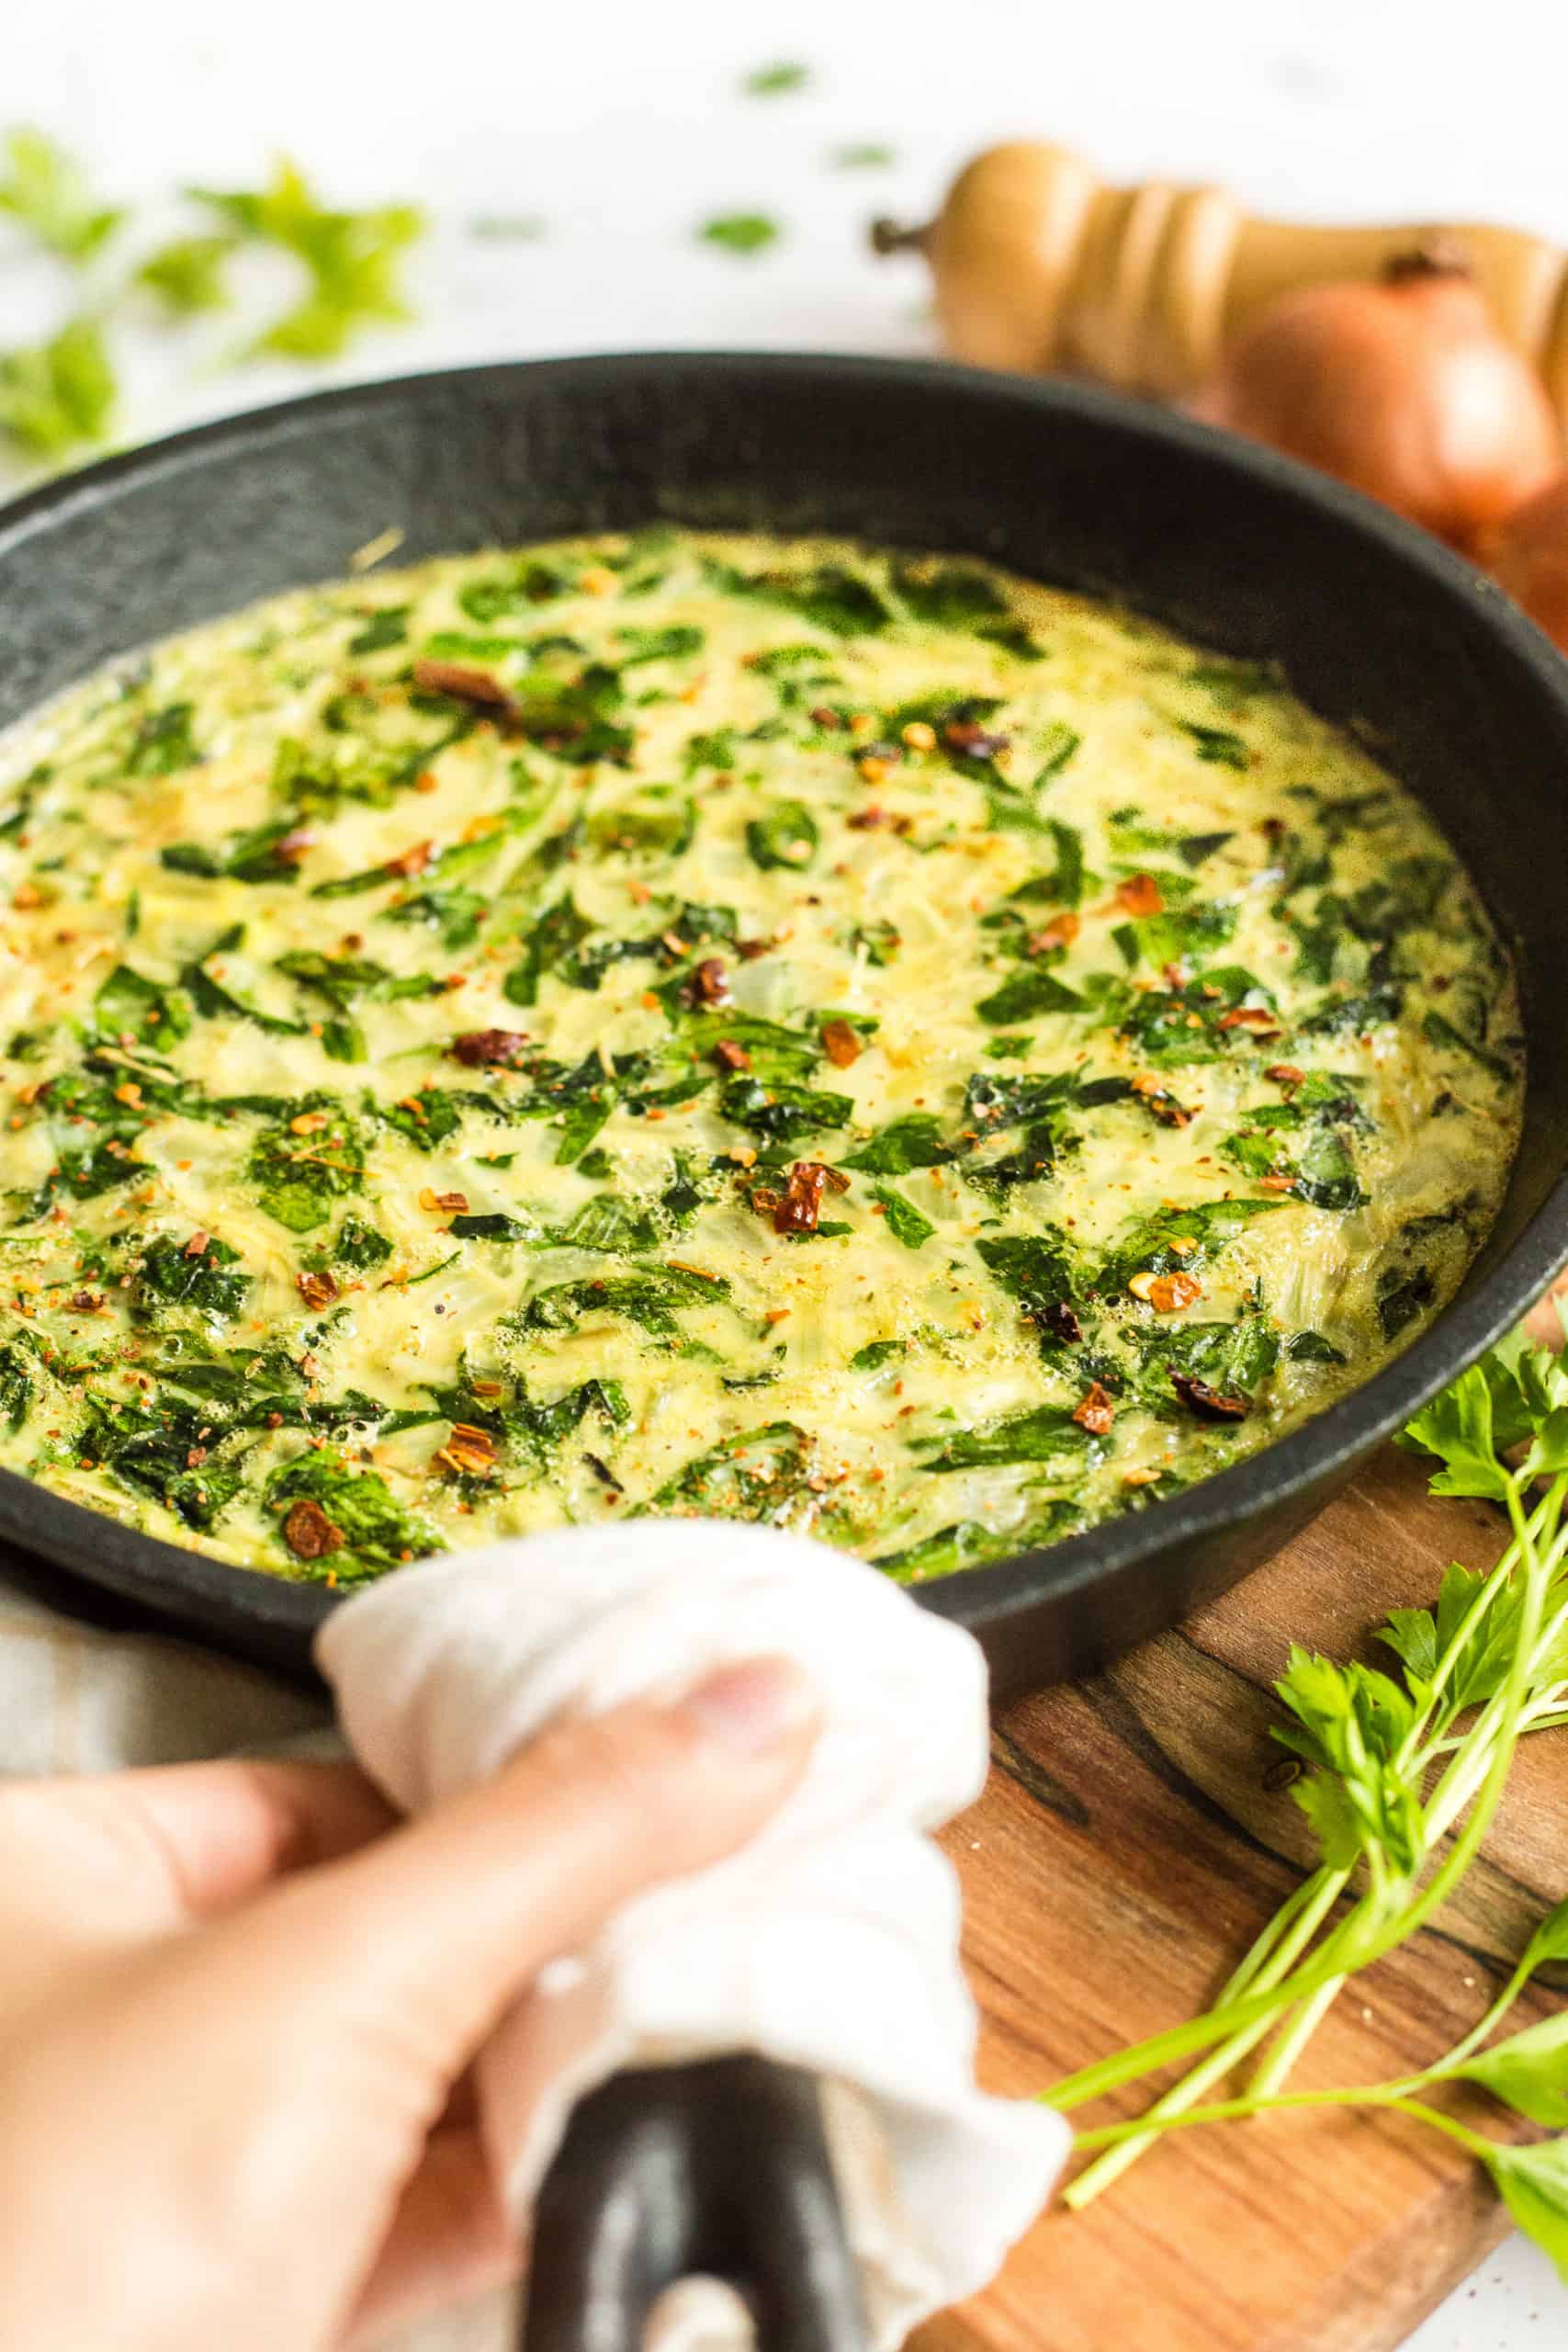 Hand holding a cast iron skillet with crustless spinach quiche.